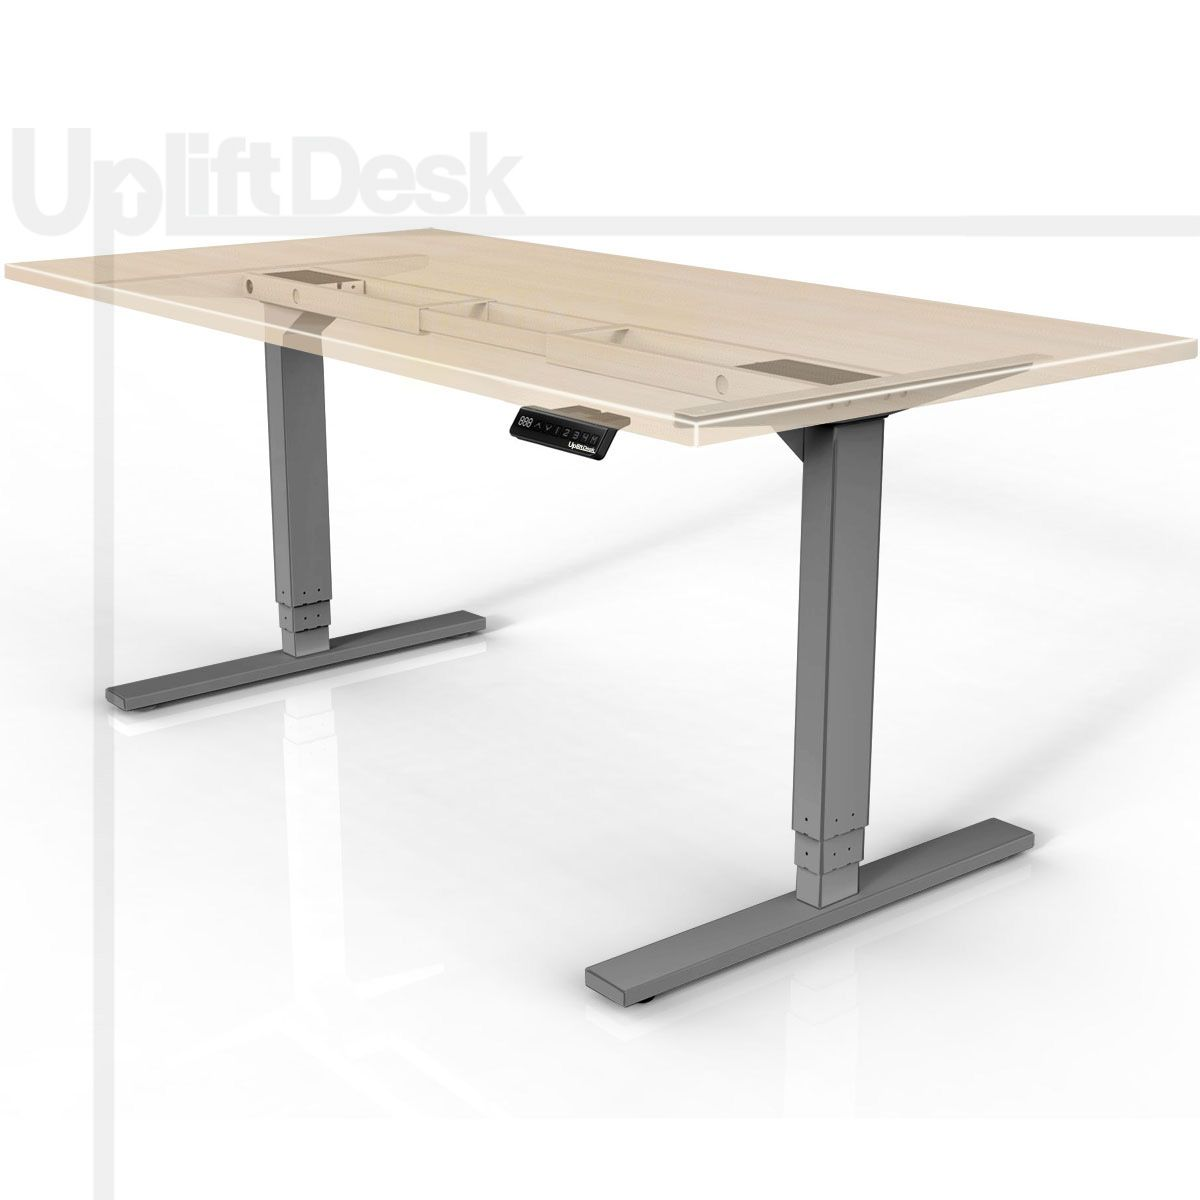 The Uplift 900 Sit Stand Ergonomic Desk Silver Is A Sturdy Affordable Electric Adjustable Adjustable Height Desk Sit Stand Desk Adjustable Diy Standing Desk